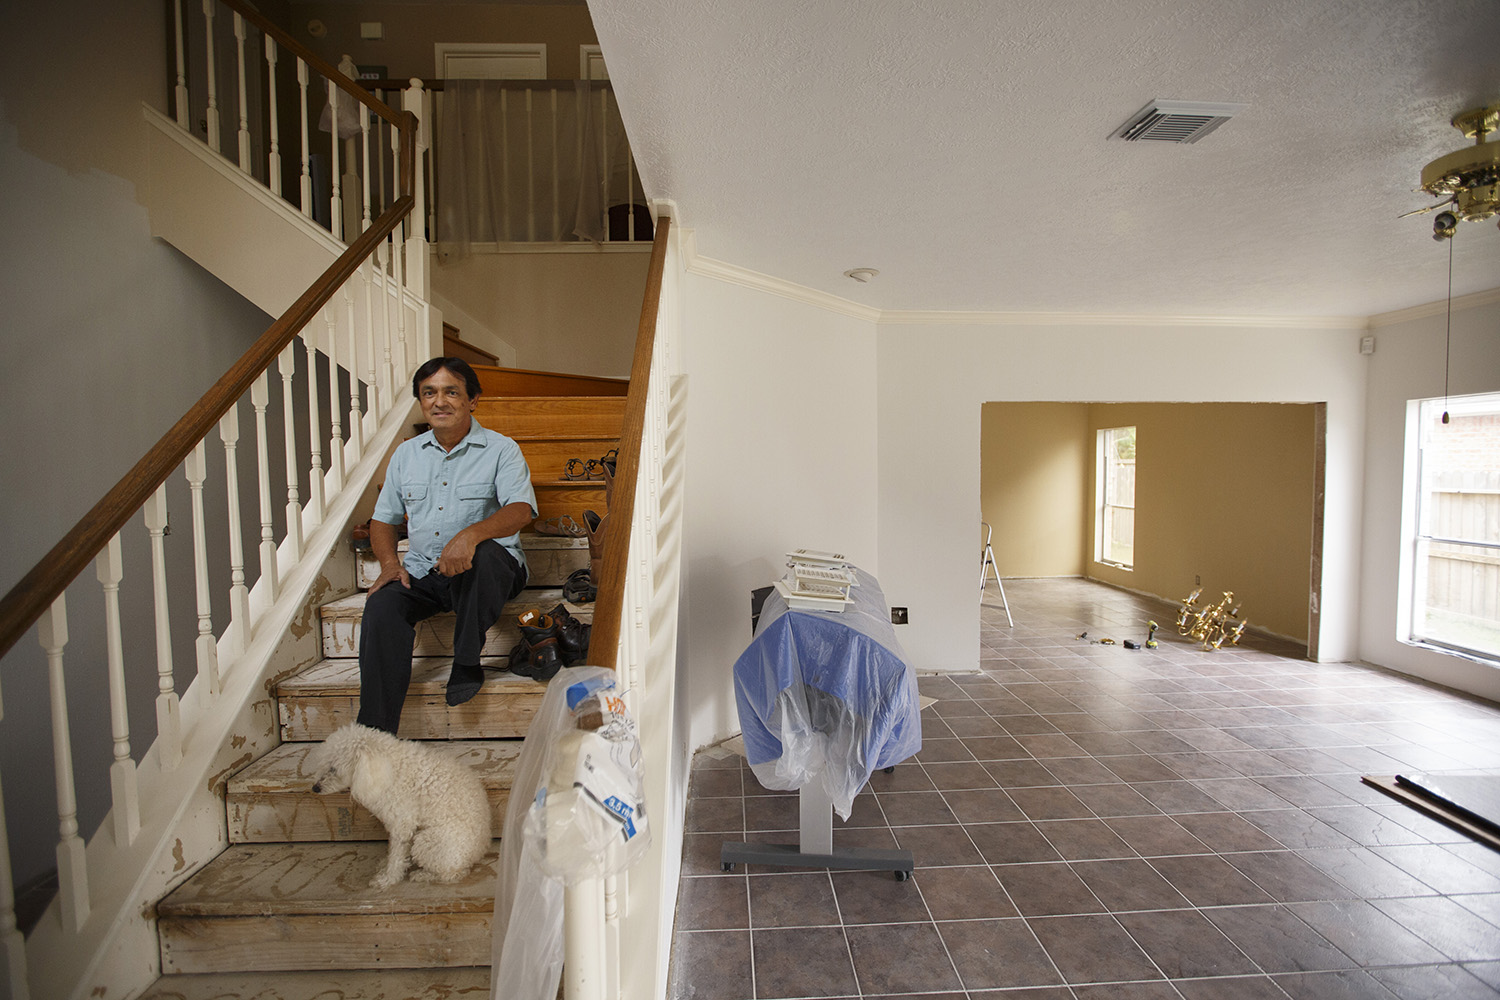 Gabriel Segovia at his home in north Houston on Friday, Oct. 20, 2017. Segovia and his wife decided to remain in their home during renovations after it flooded during Hurricane Harvey.